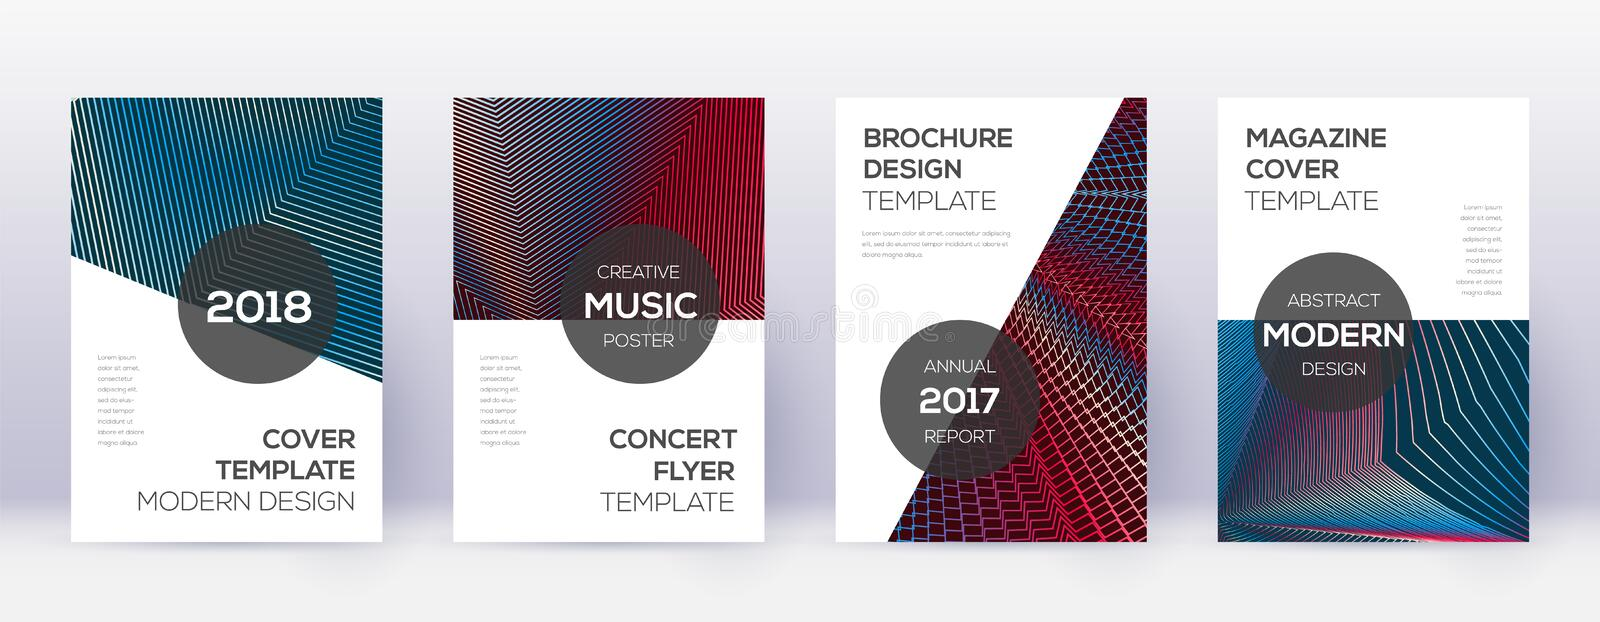 Modern brochure design template set. Red abstract. Lines on white blue background. Beauteous brochure design. Mesmeric catalog, poster, book template etc royalty free illustration